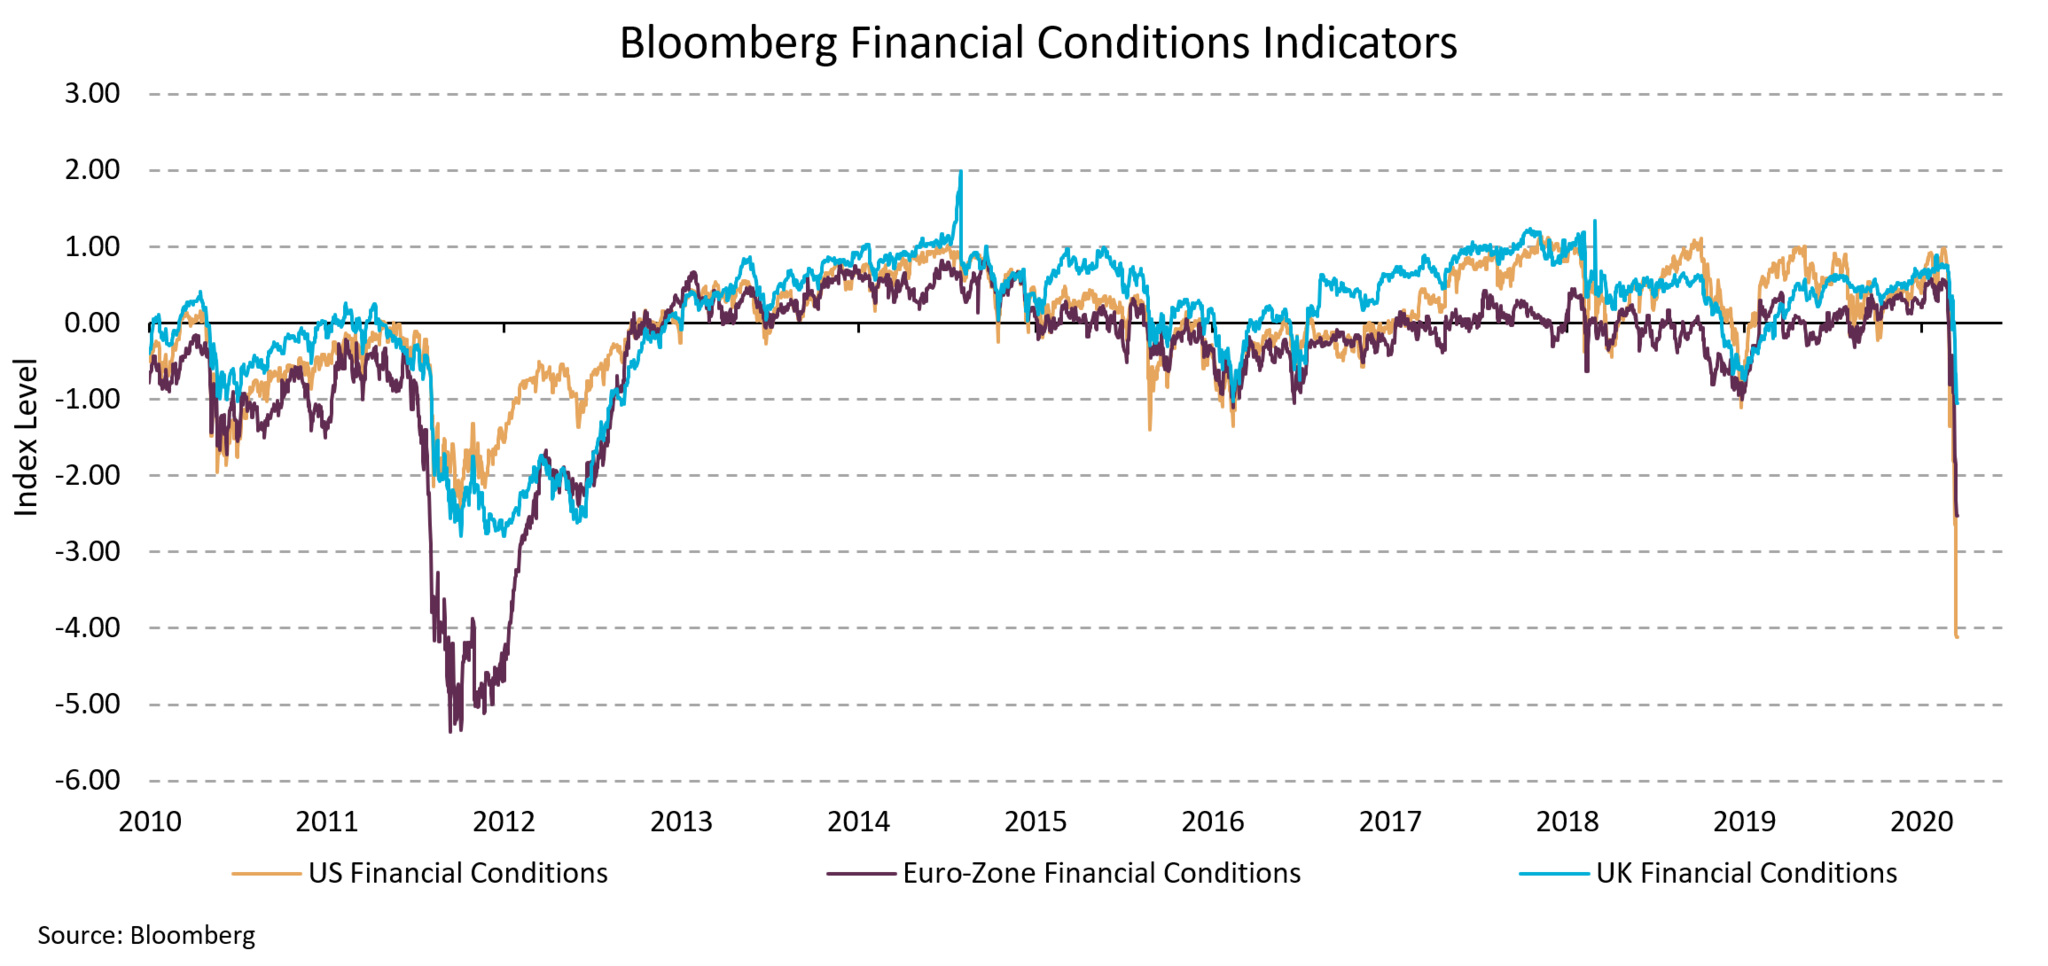 This chart shows the trend change of the Financial Conditions across three major markets, being the US, Eurozone and UK. At this stage the index remains above its last major decline in 2012. This metric is calculated daily based on a number of key inputs that relate to market stability across equity, fixed interest, currency, etc.